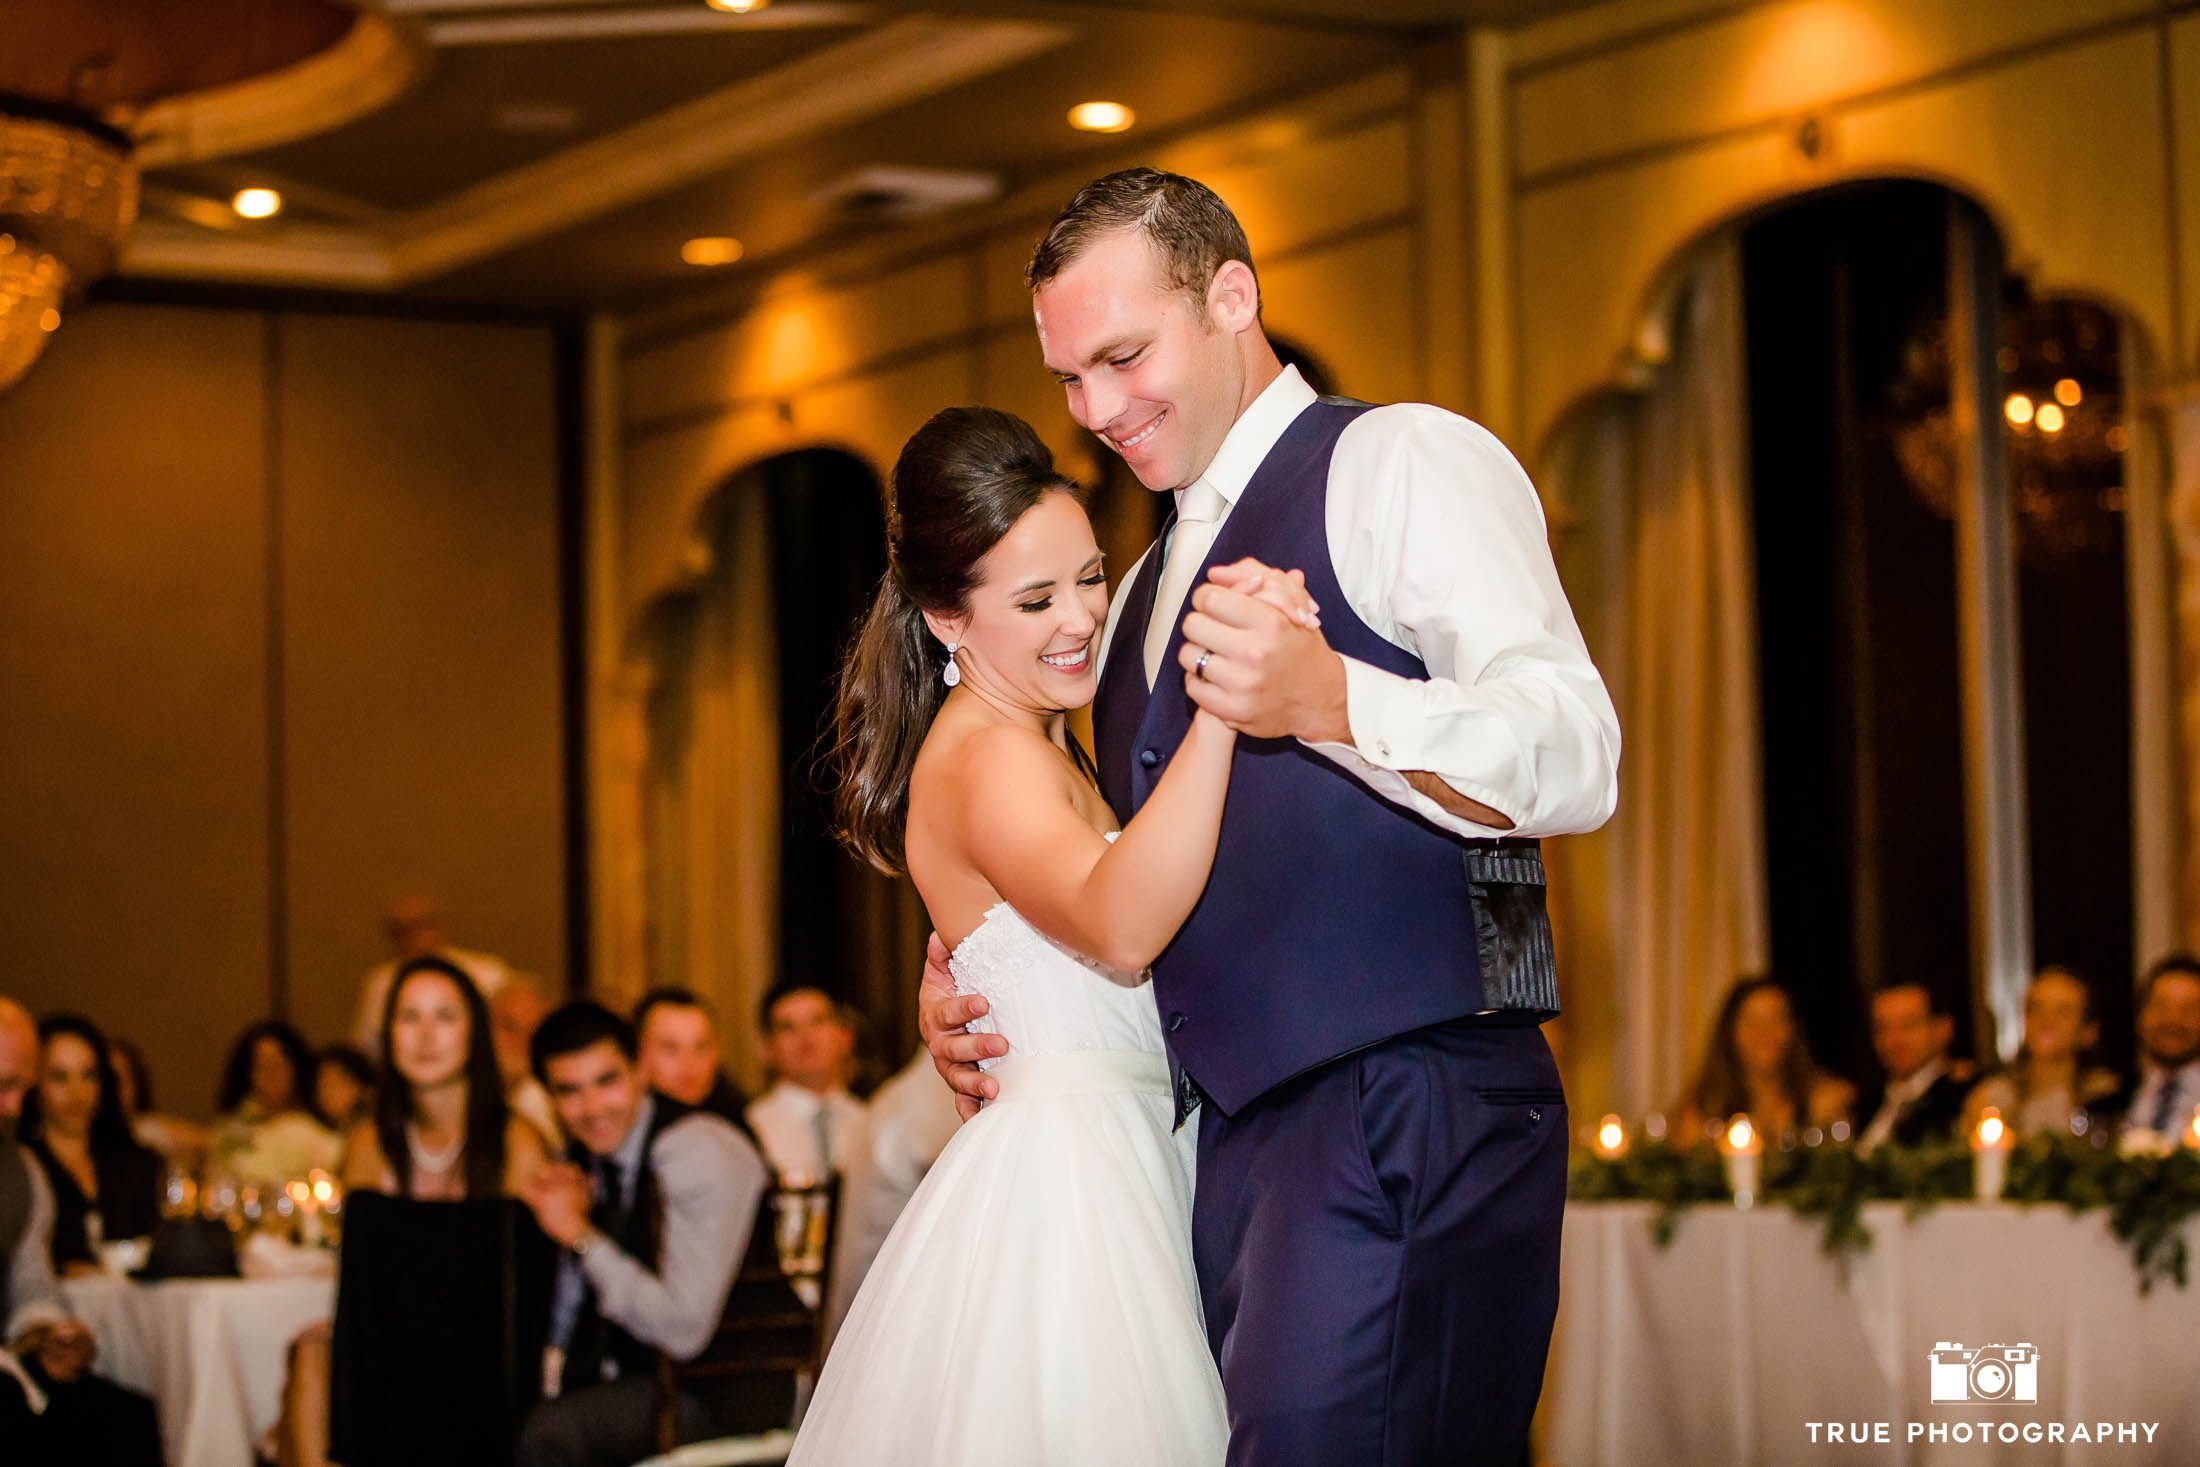 Grooms embraces Bride as they smile during First Dance